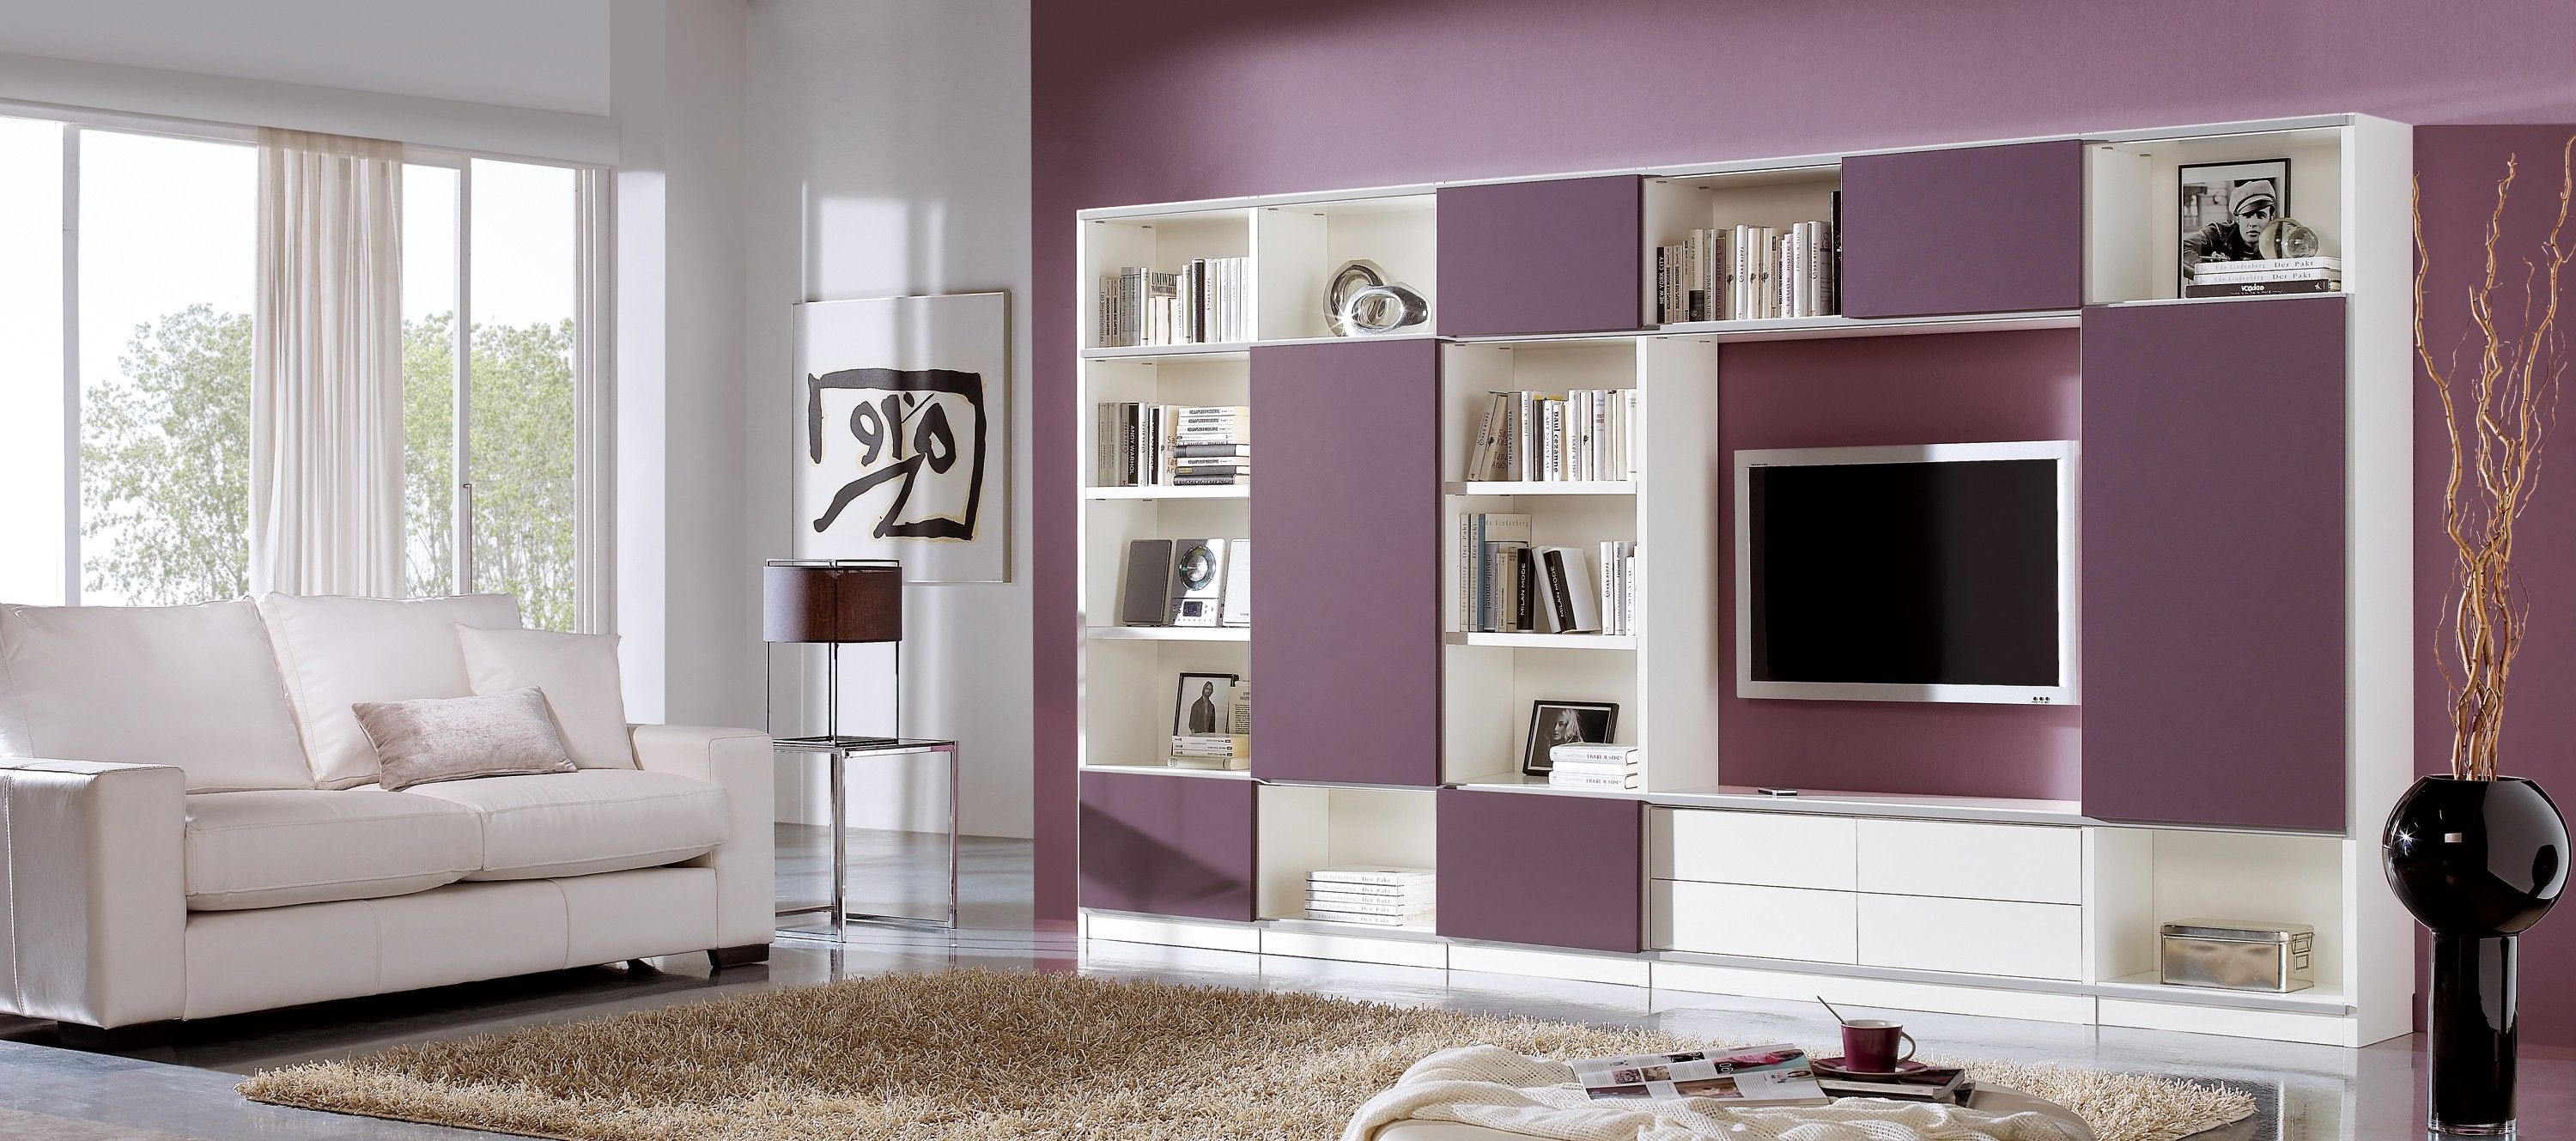 Modern Wall Unit System With Smart Sleek Shelves And Floating ...